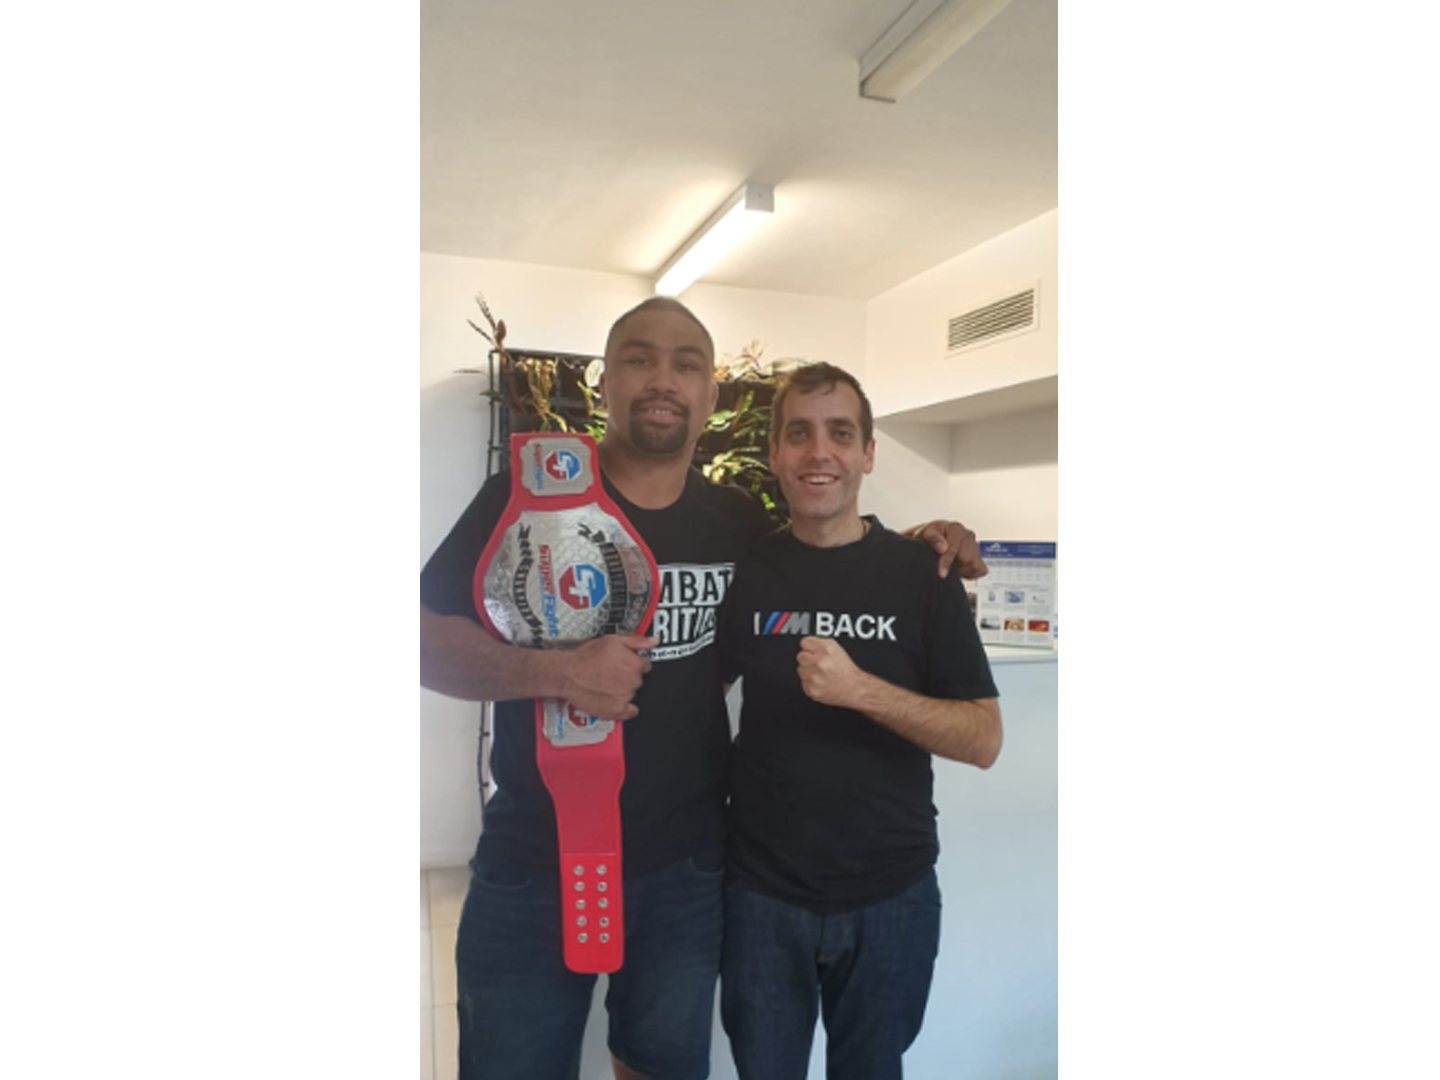 My good friend Samiuela Kei the Australian Heavyweight Superfight champion. He gives me a lot of credit which is incredibly flattering but he's a very hard worker and extremely tough.